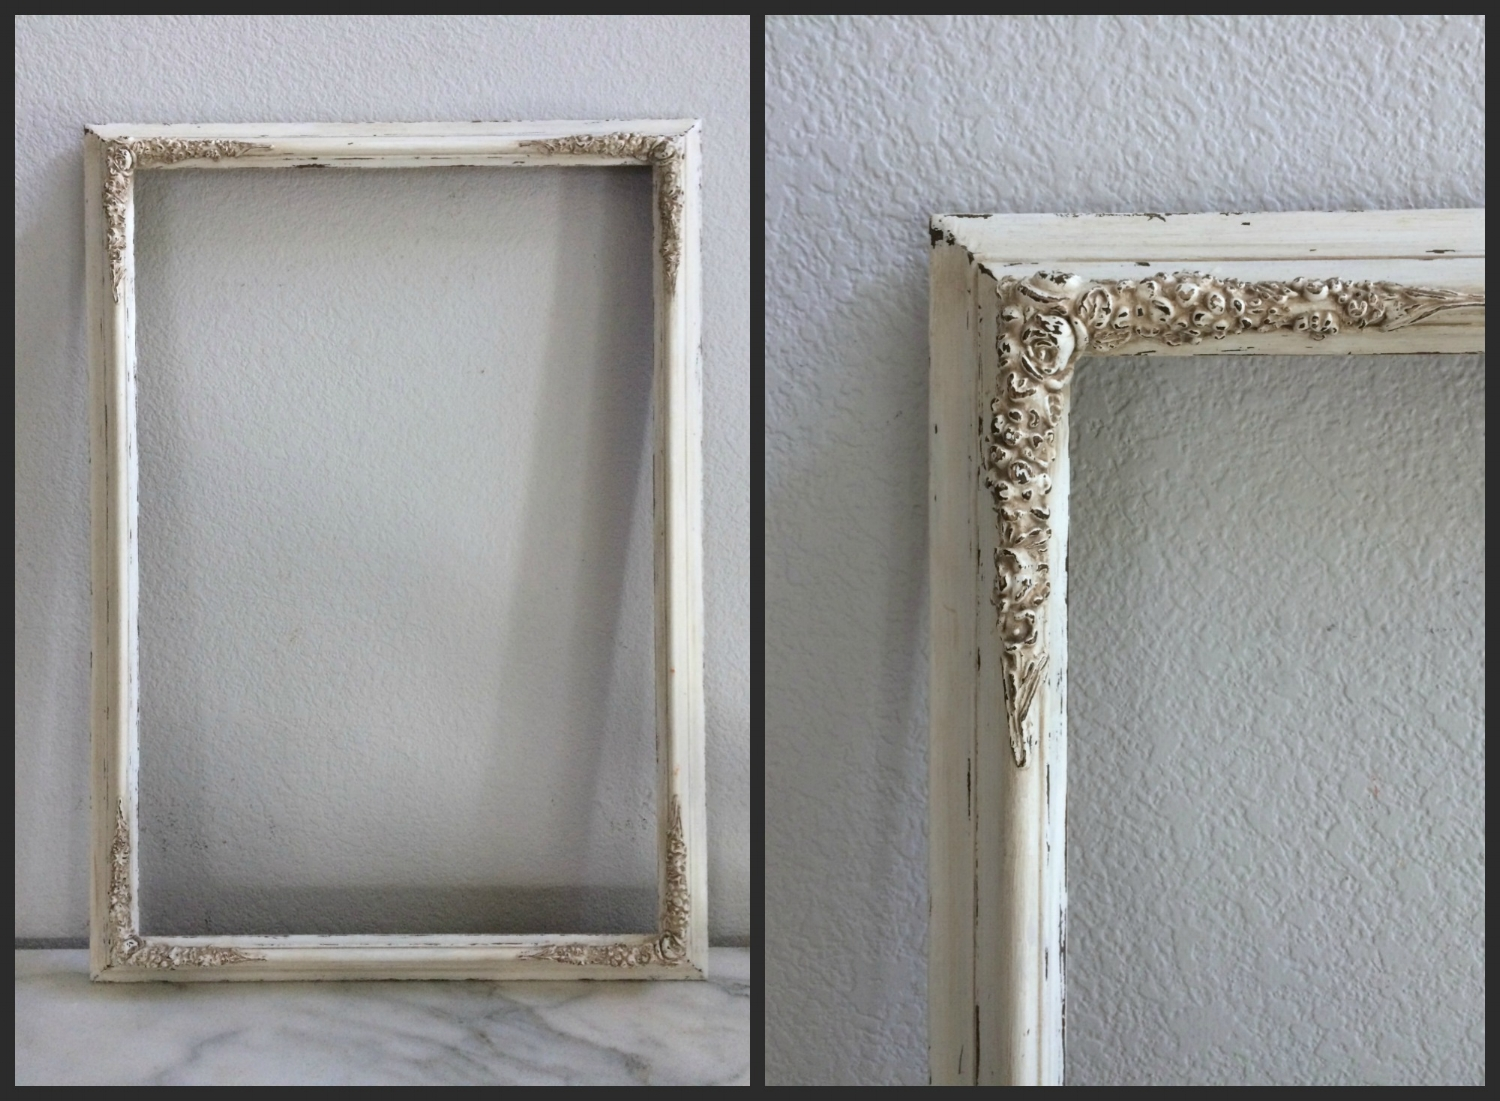 LG -OLD WHITE, FLORAL CORNERS - 17 X 25 - $15